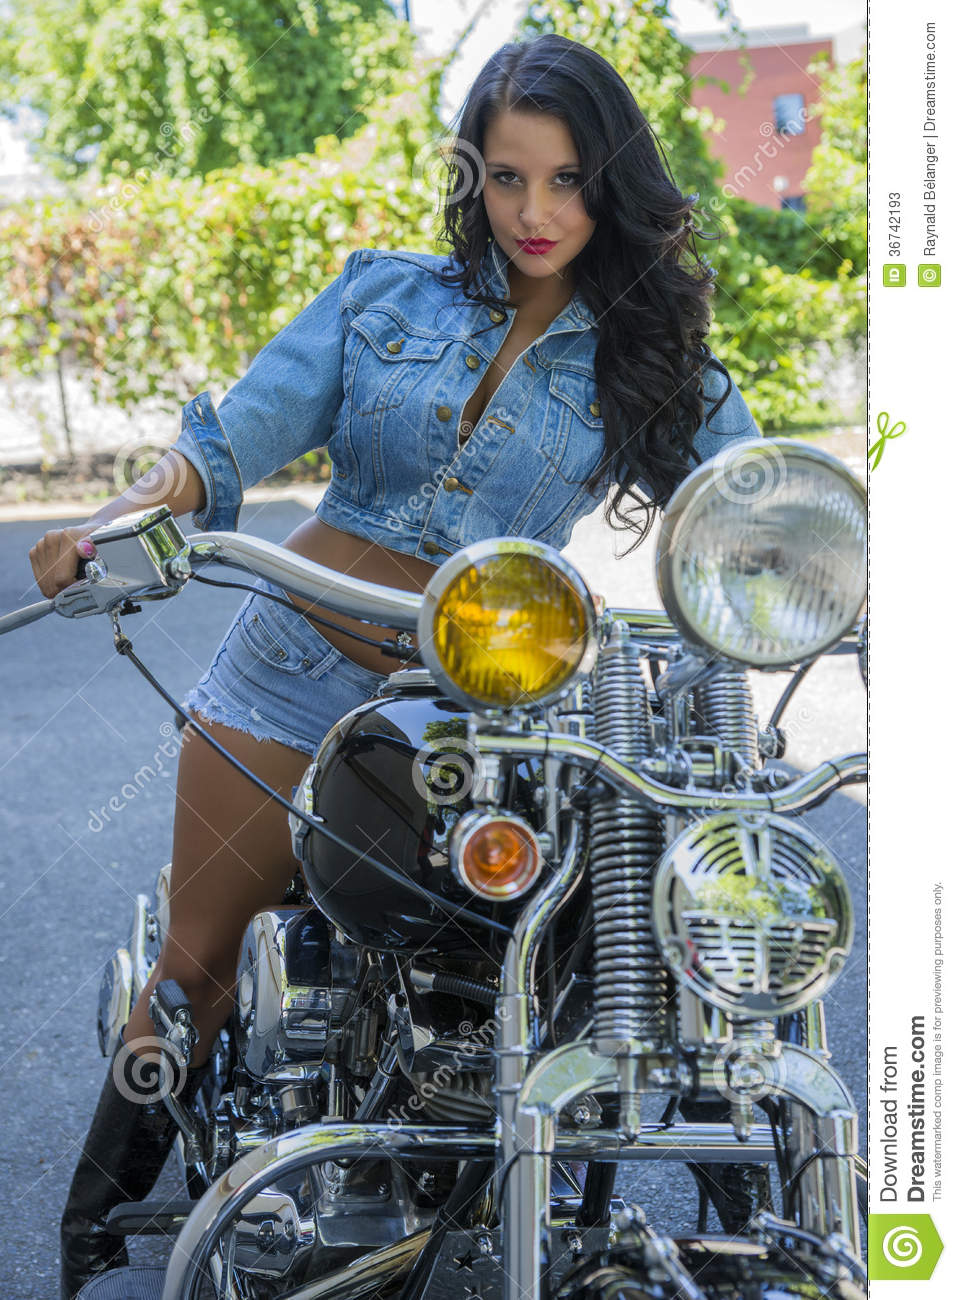 Harley Davidson Prices >> Beauty with bicycle stock image. Image of cute, harley ...